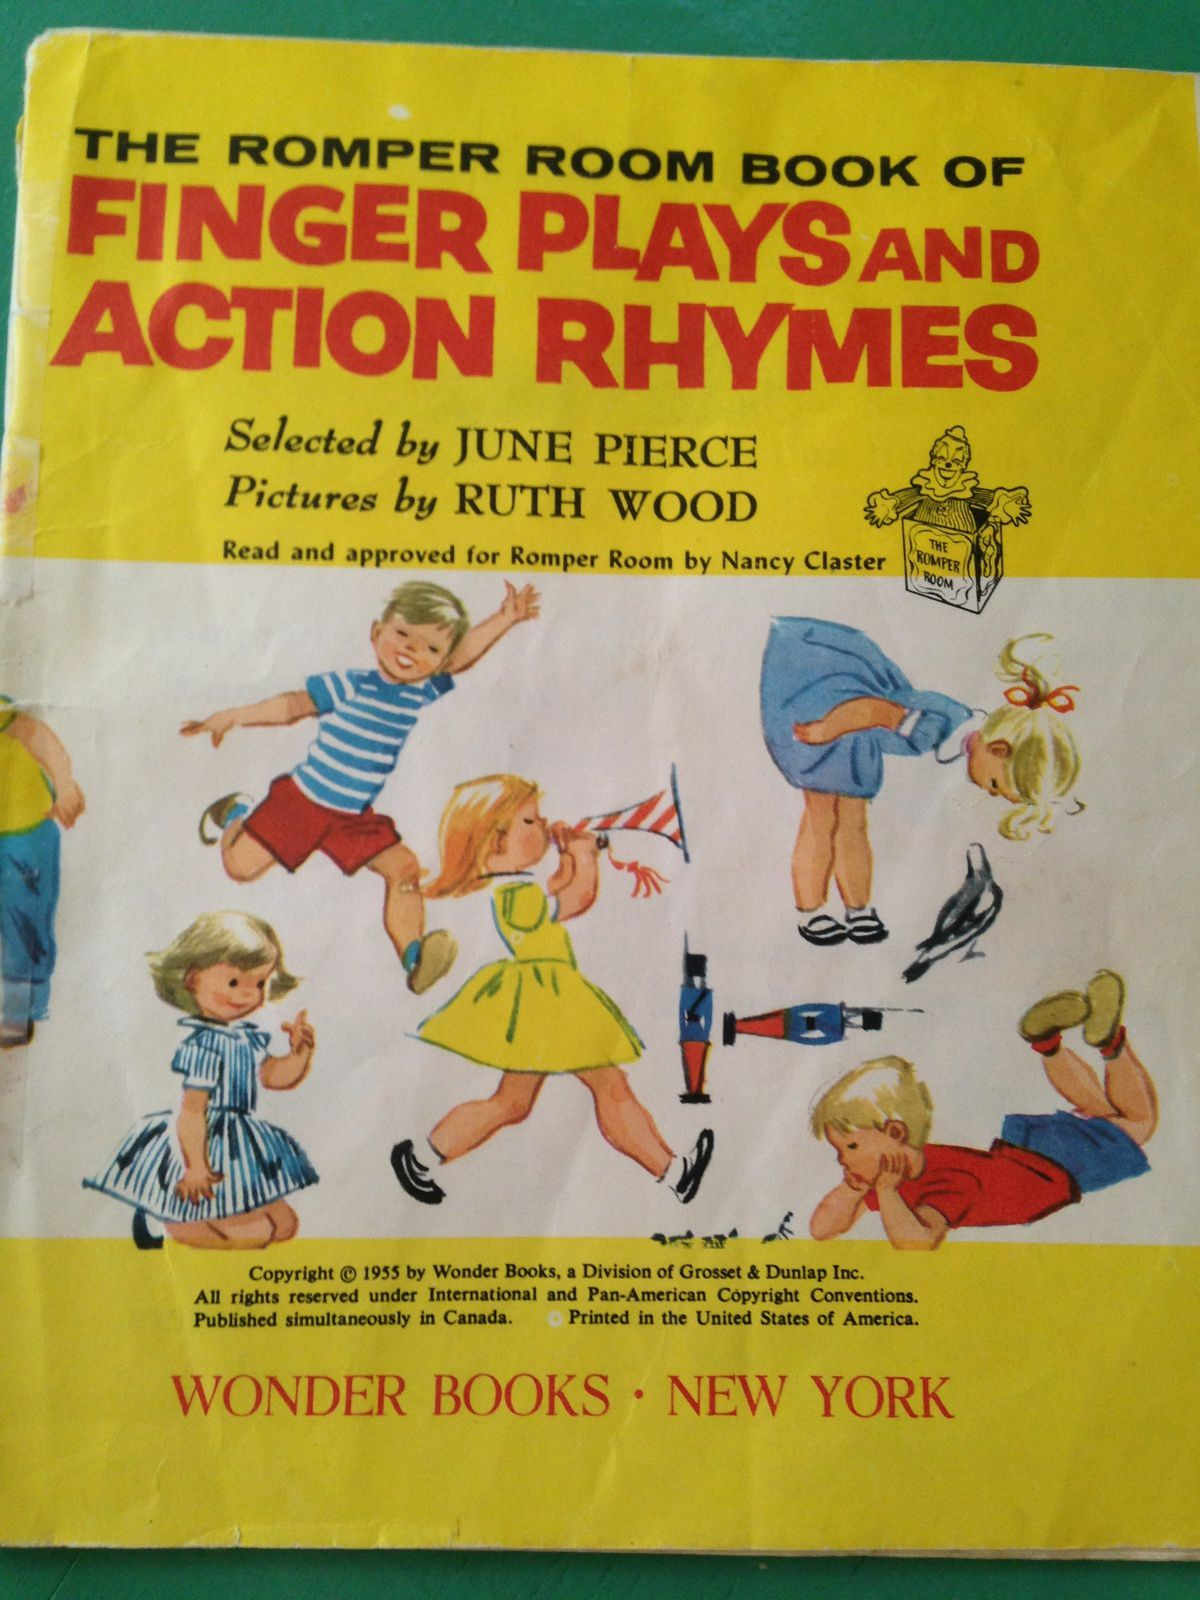 #childrenbook #romperbook : the romper room book offinger plays andaction rymes of #junePierce, #RuthWood #songs, famous for #children